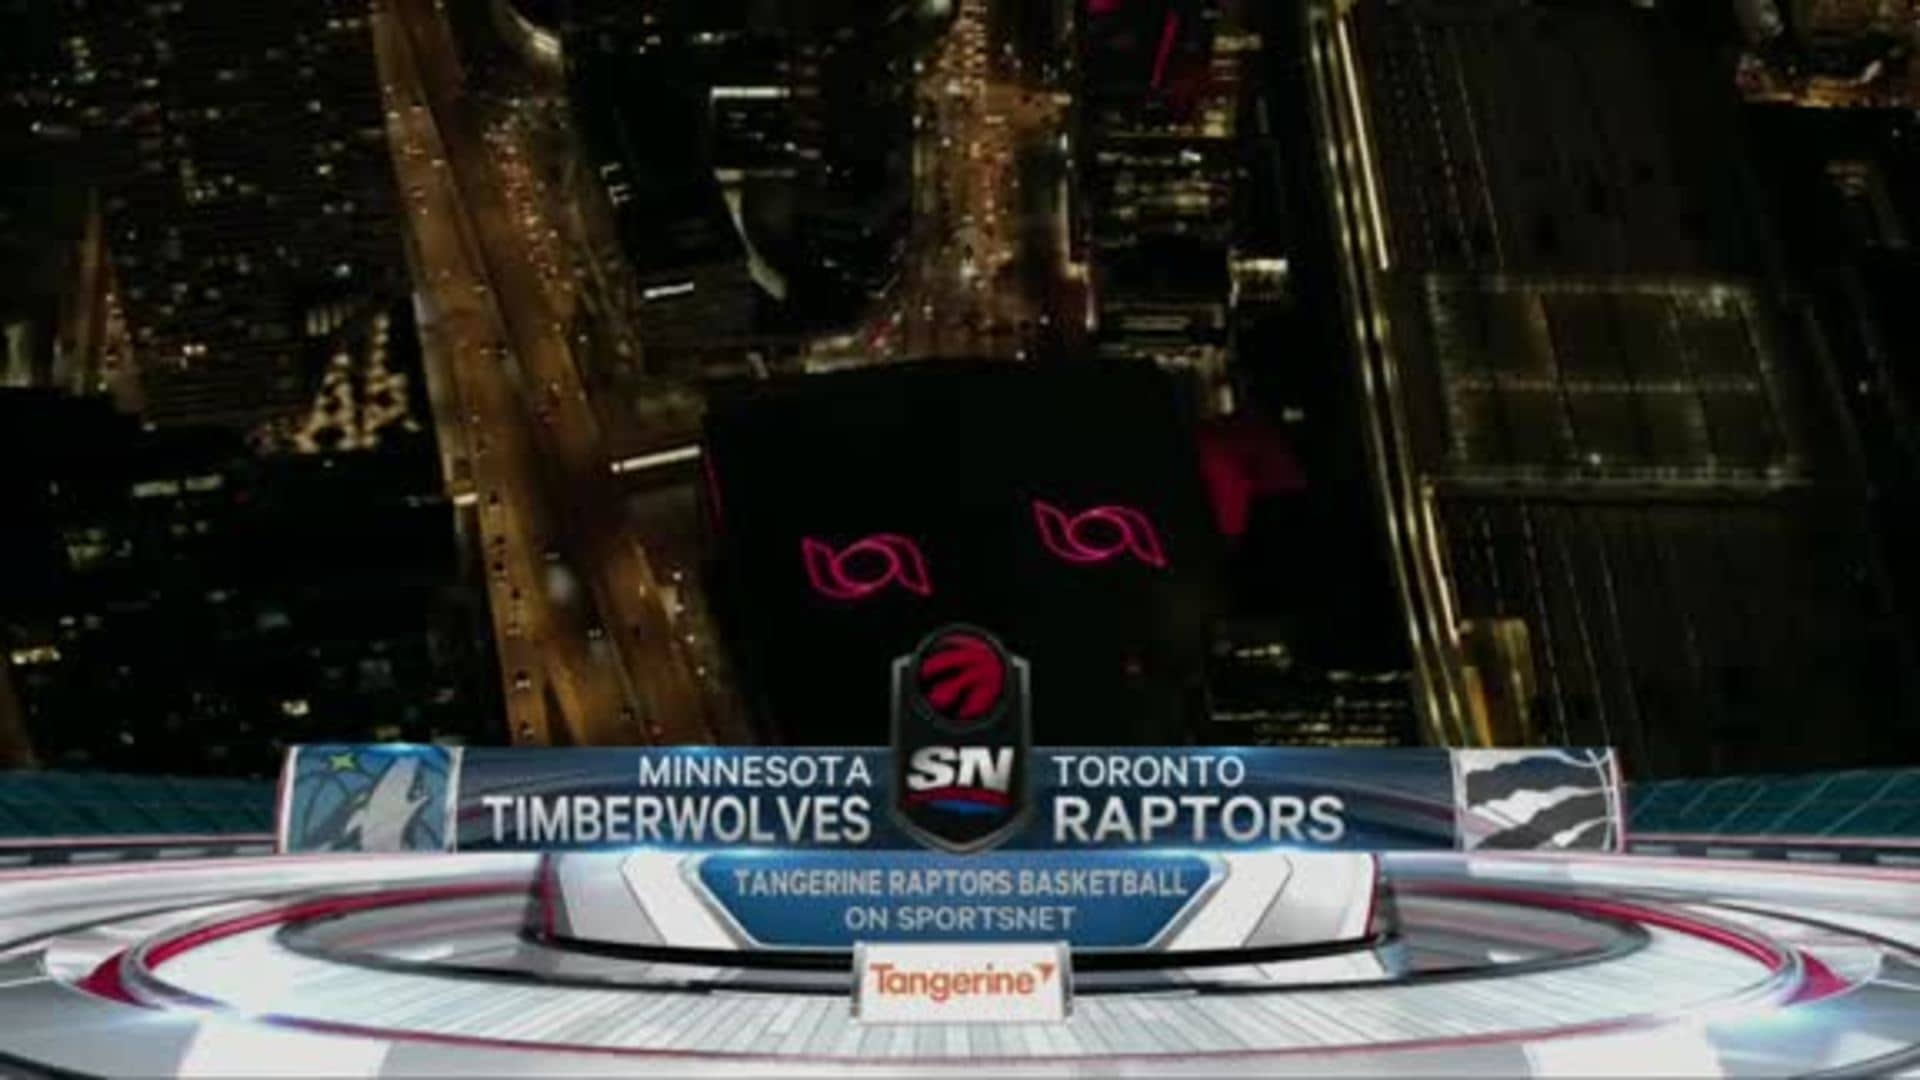 Game Highlights: Raptors vs Timberwolves - February 10, 2020